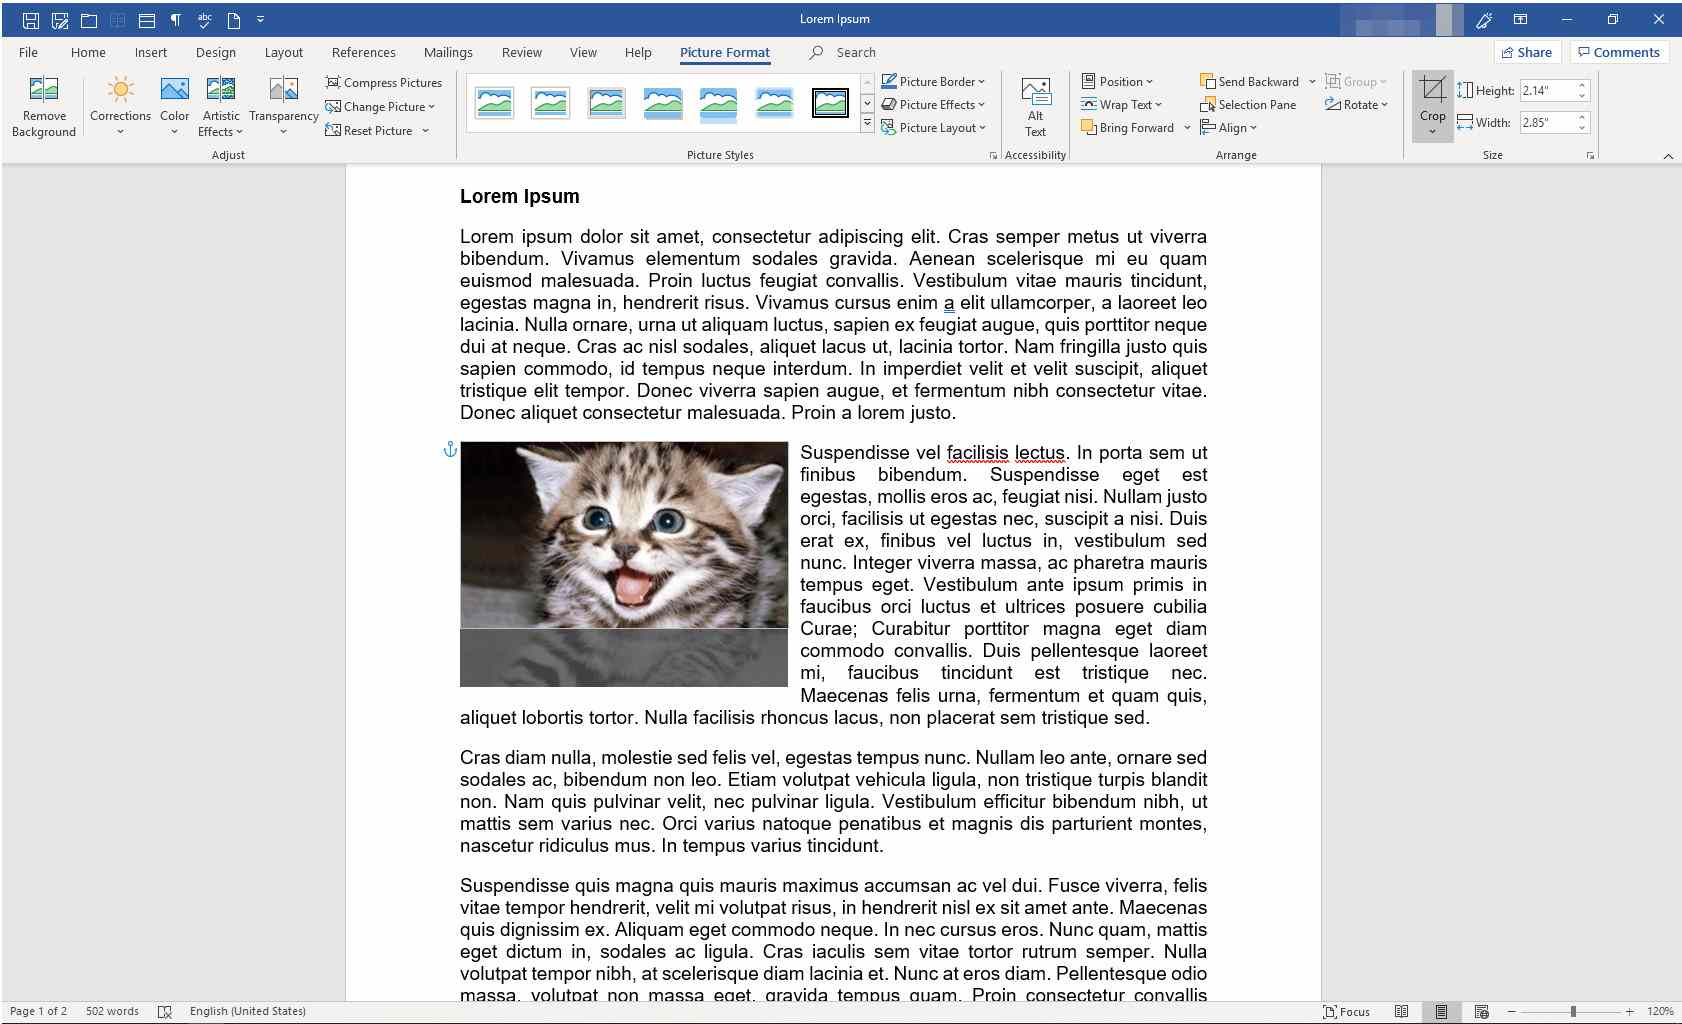 How To Resize An Image Or Object In Word